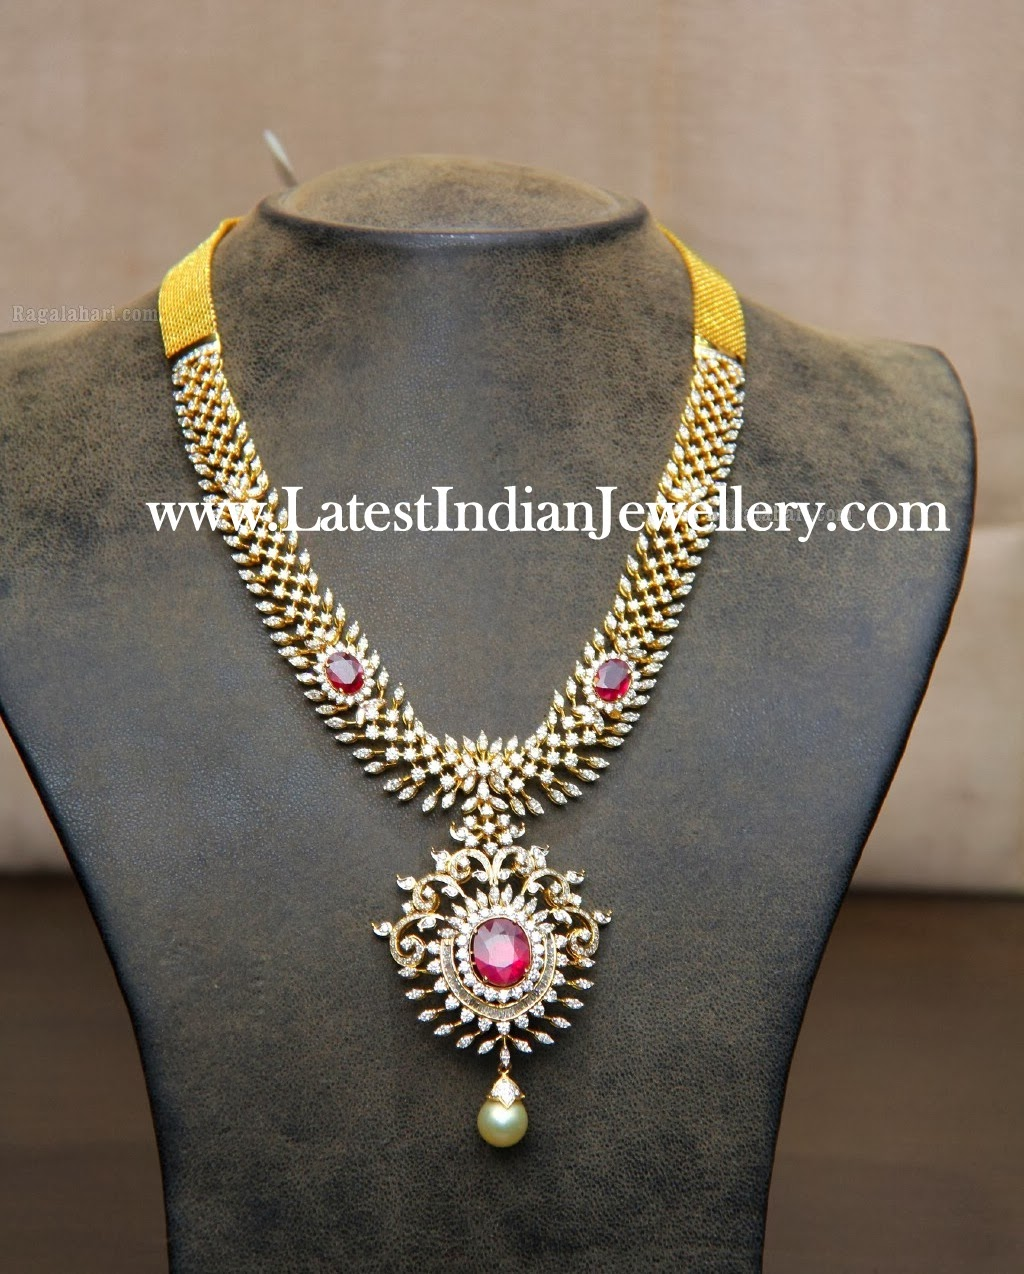 designer indian in org set engagement designs blog delhi at necklace djewels jewellery diamond wedding